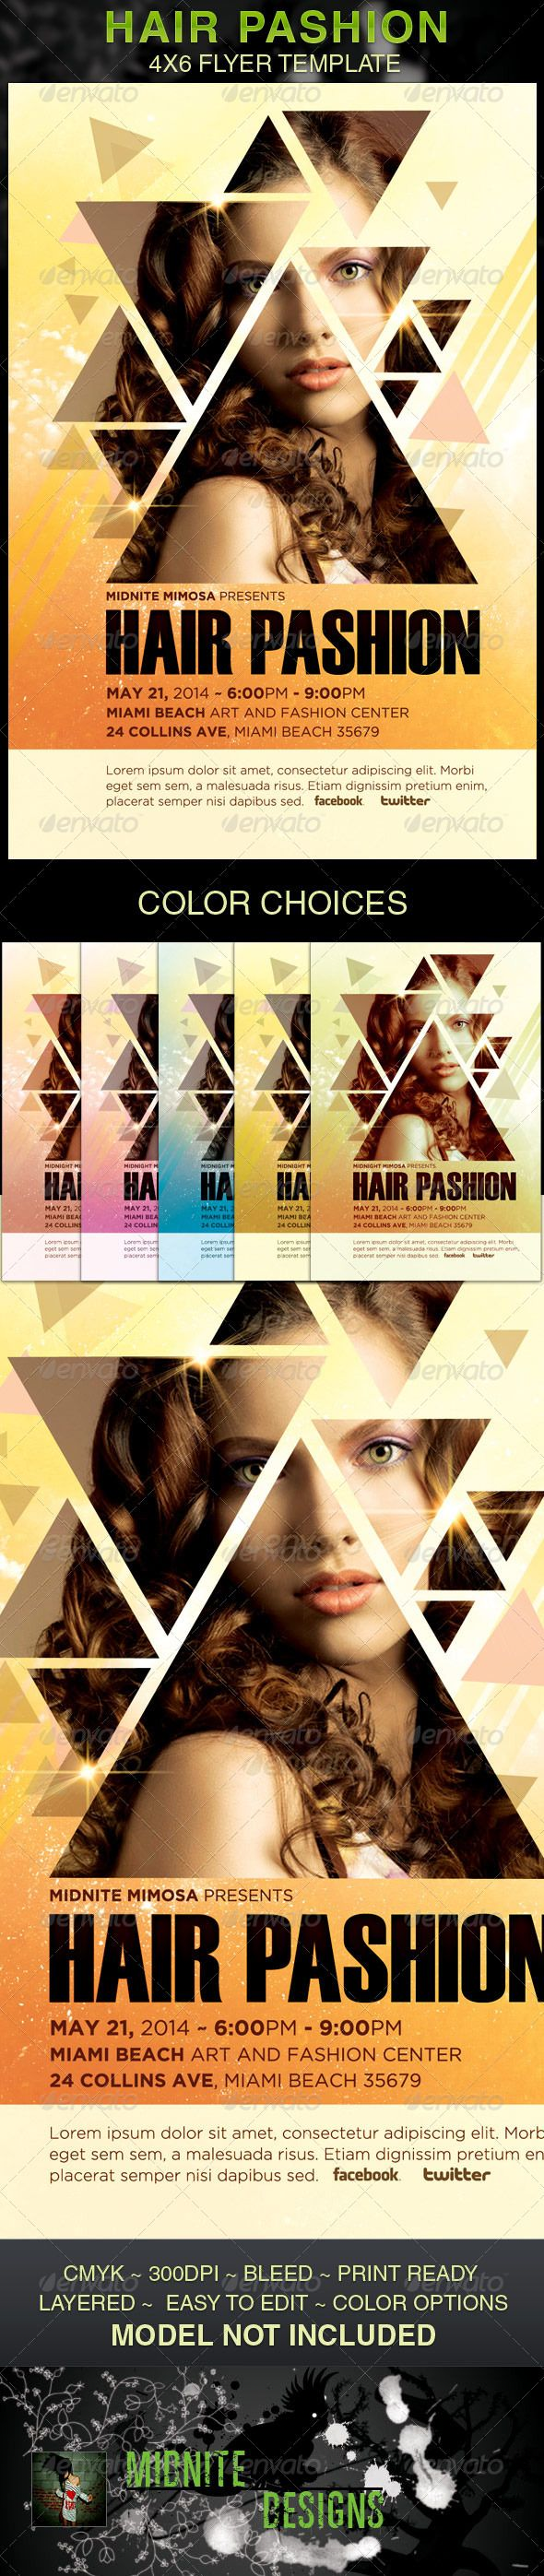 This Hair Pashion Flyer Template is customized for Hair and Fashion events, Hair Stylist Promotions, Party Events and Club Events, that need a modern and unique look. You can change colors and drop your photo in place with ease. Add this to your promotion package for a eye catching results with your contemporary audience. $6.00